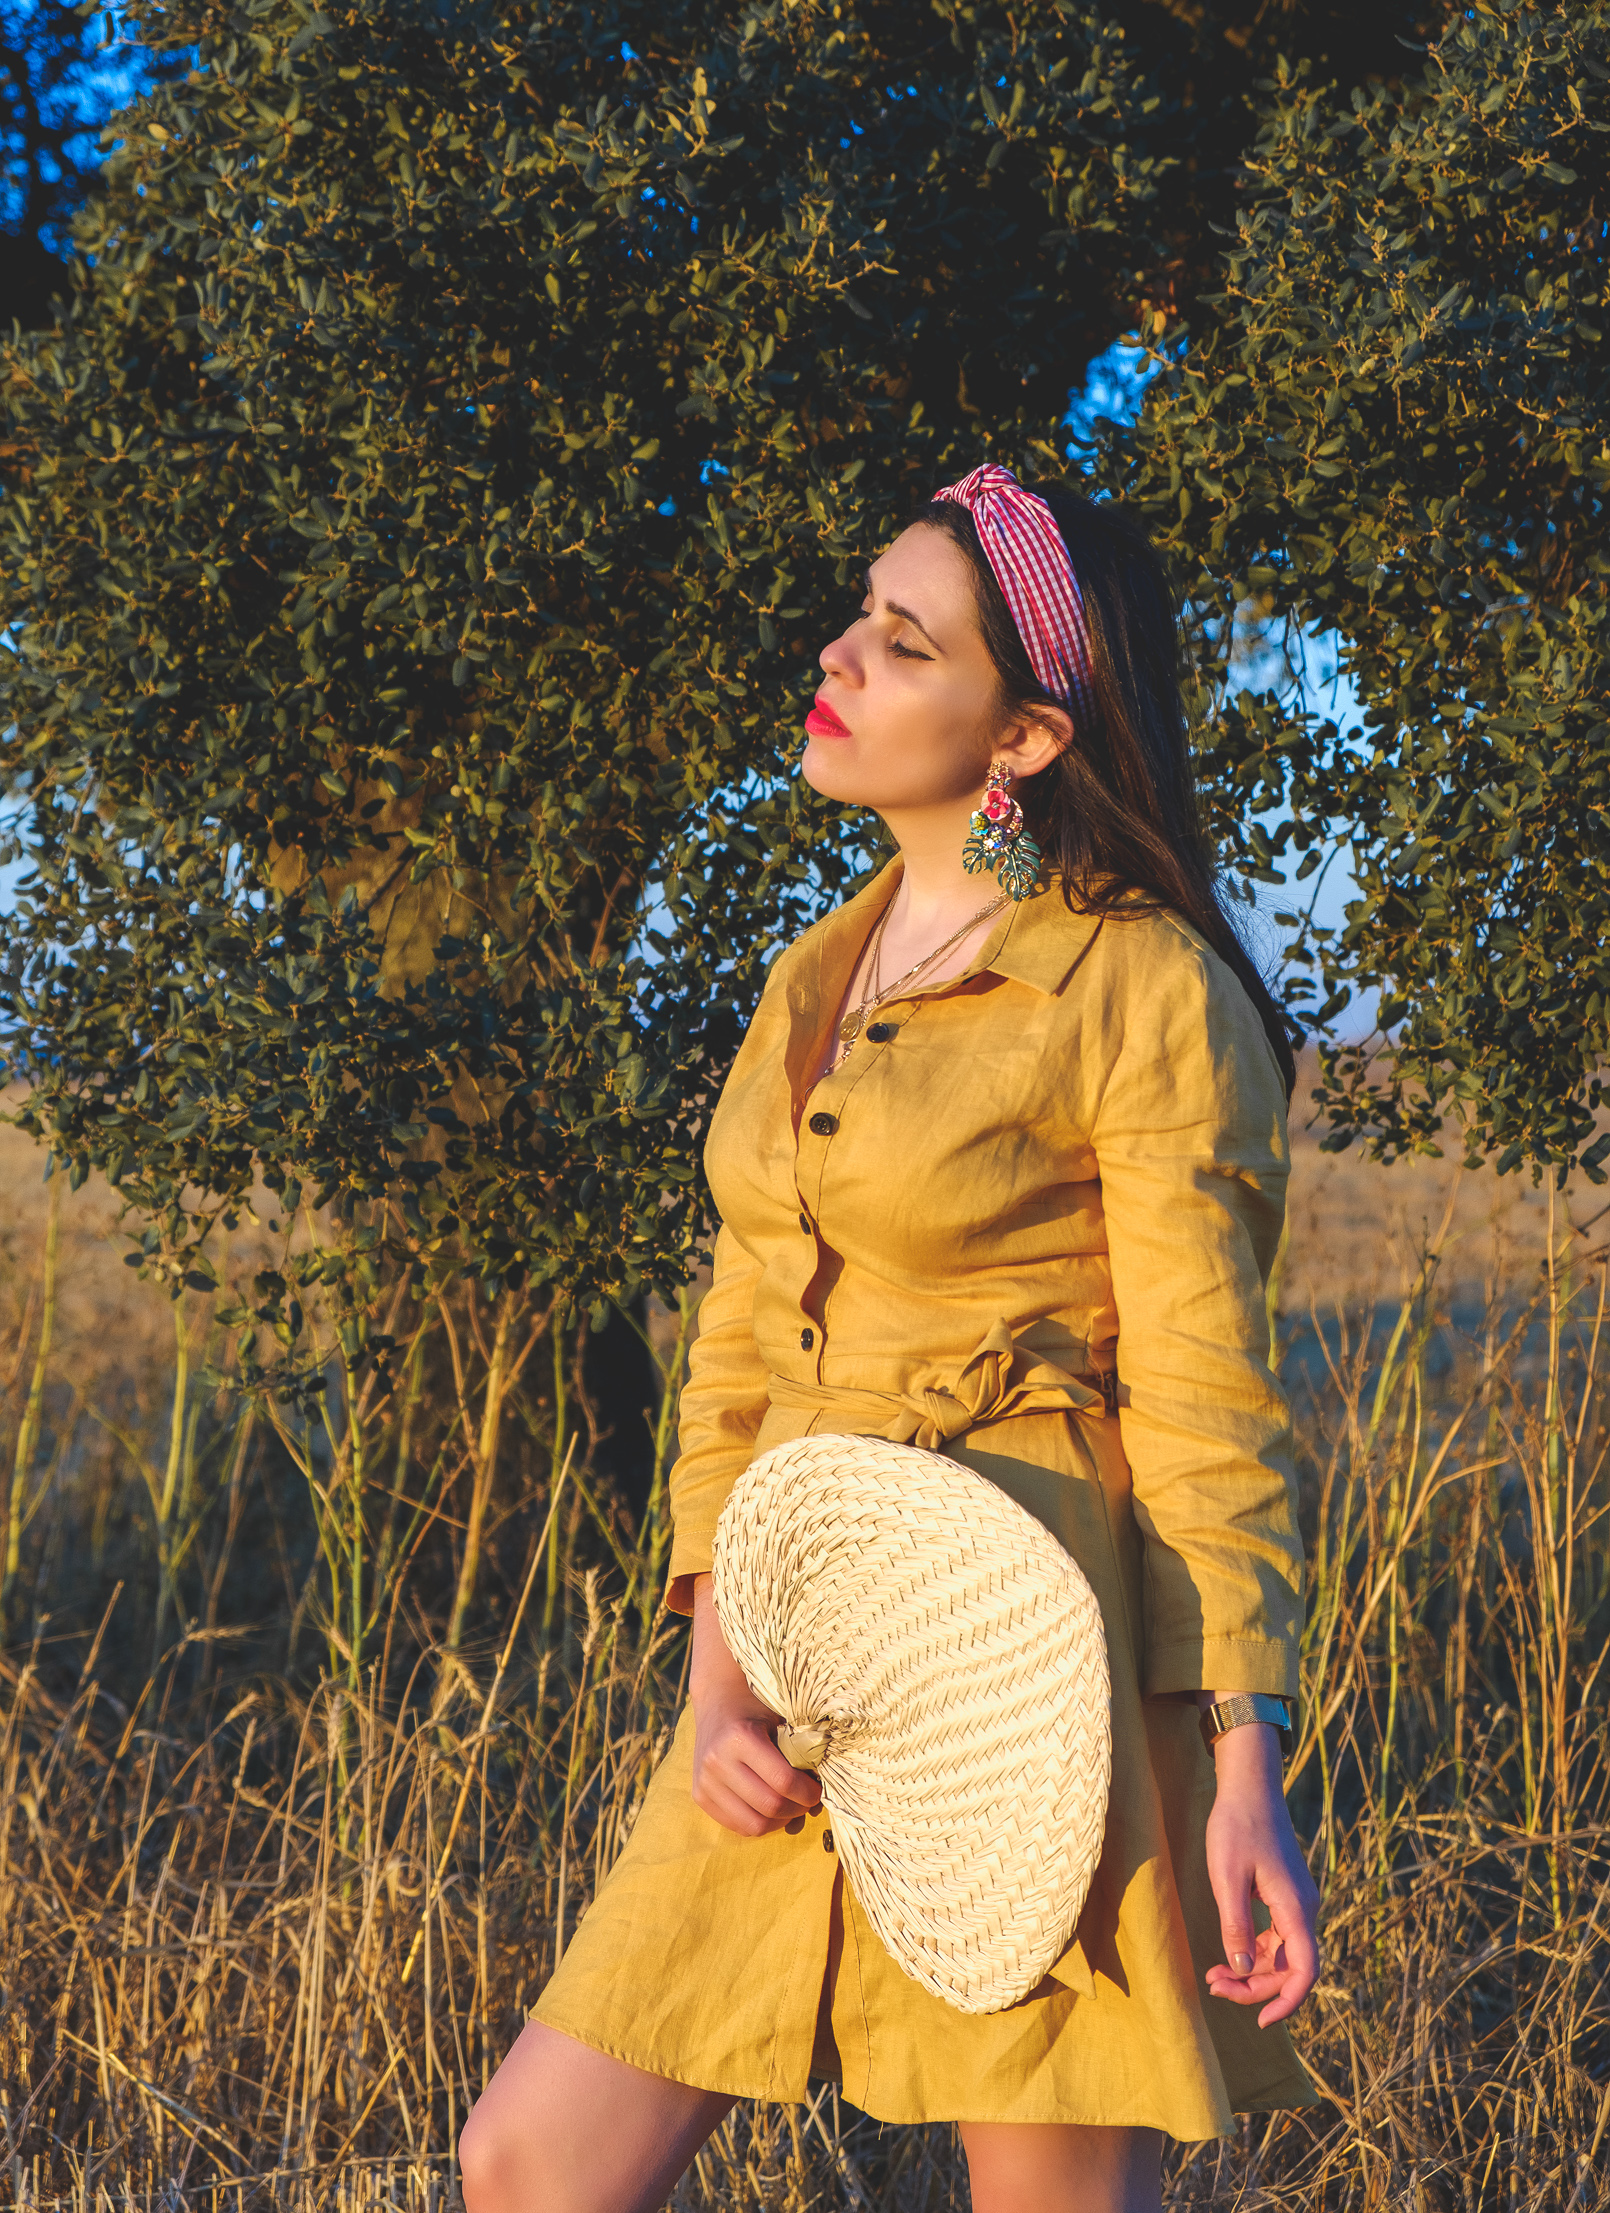 Le Fashionaire linen yellow zara dress vichy red hair  band bold earrings tropical leaf zara alentejo Cork oak beautiful field 3803 EN linen yellow zara dress vichy red hair band bold earrings tropical leaf zara alentejo Cork oak beautiful field 3803 EN